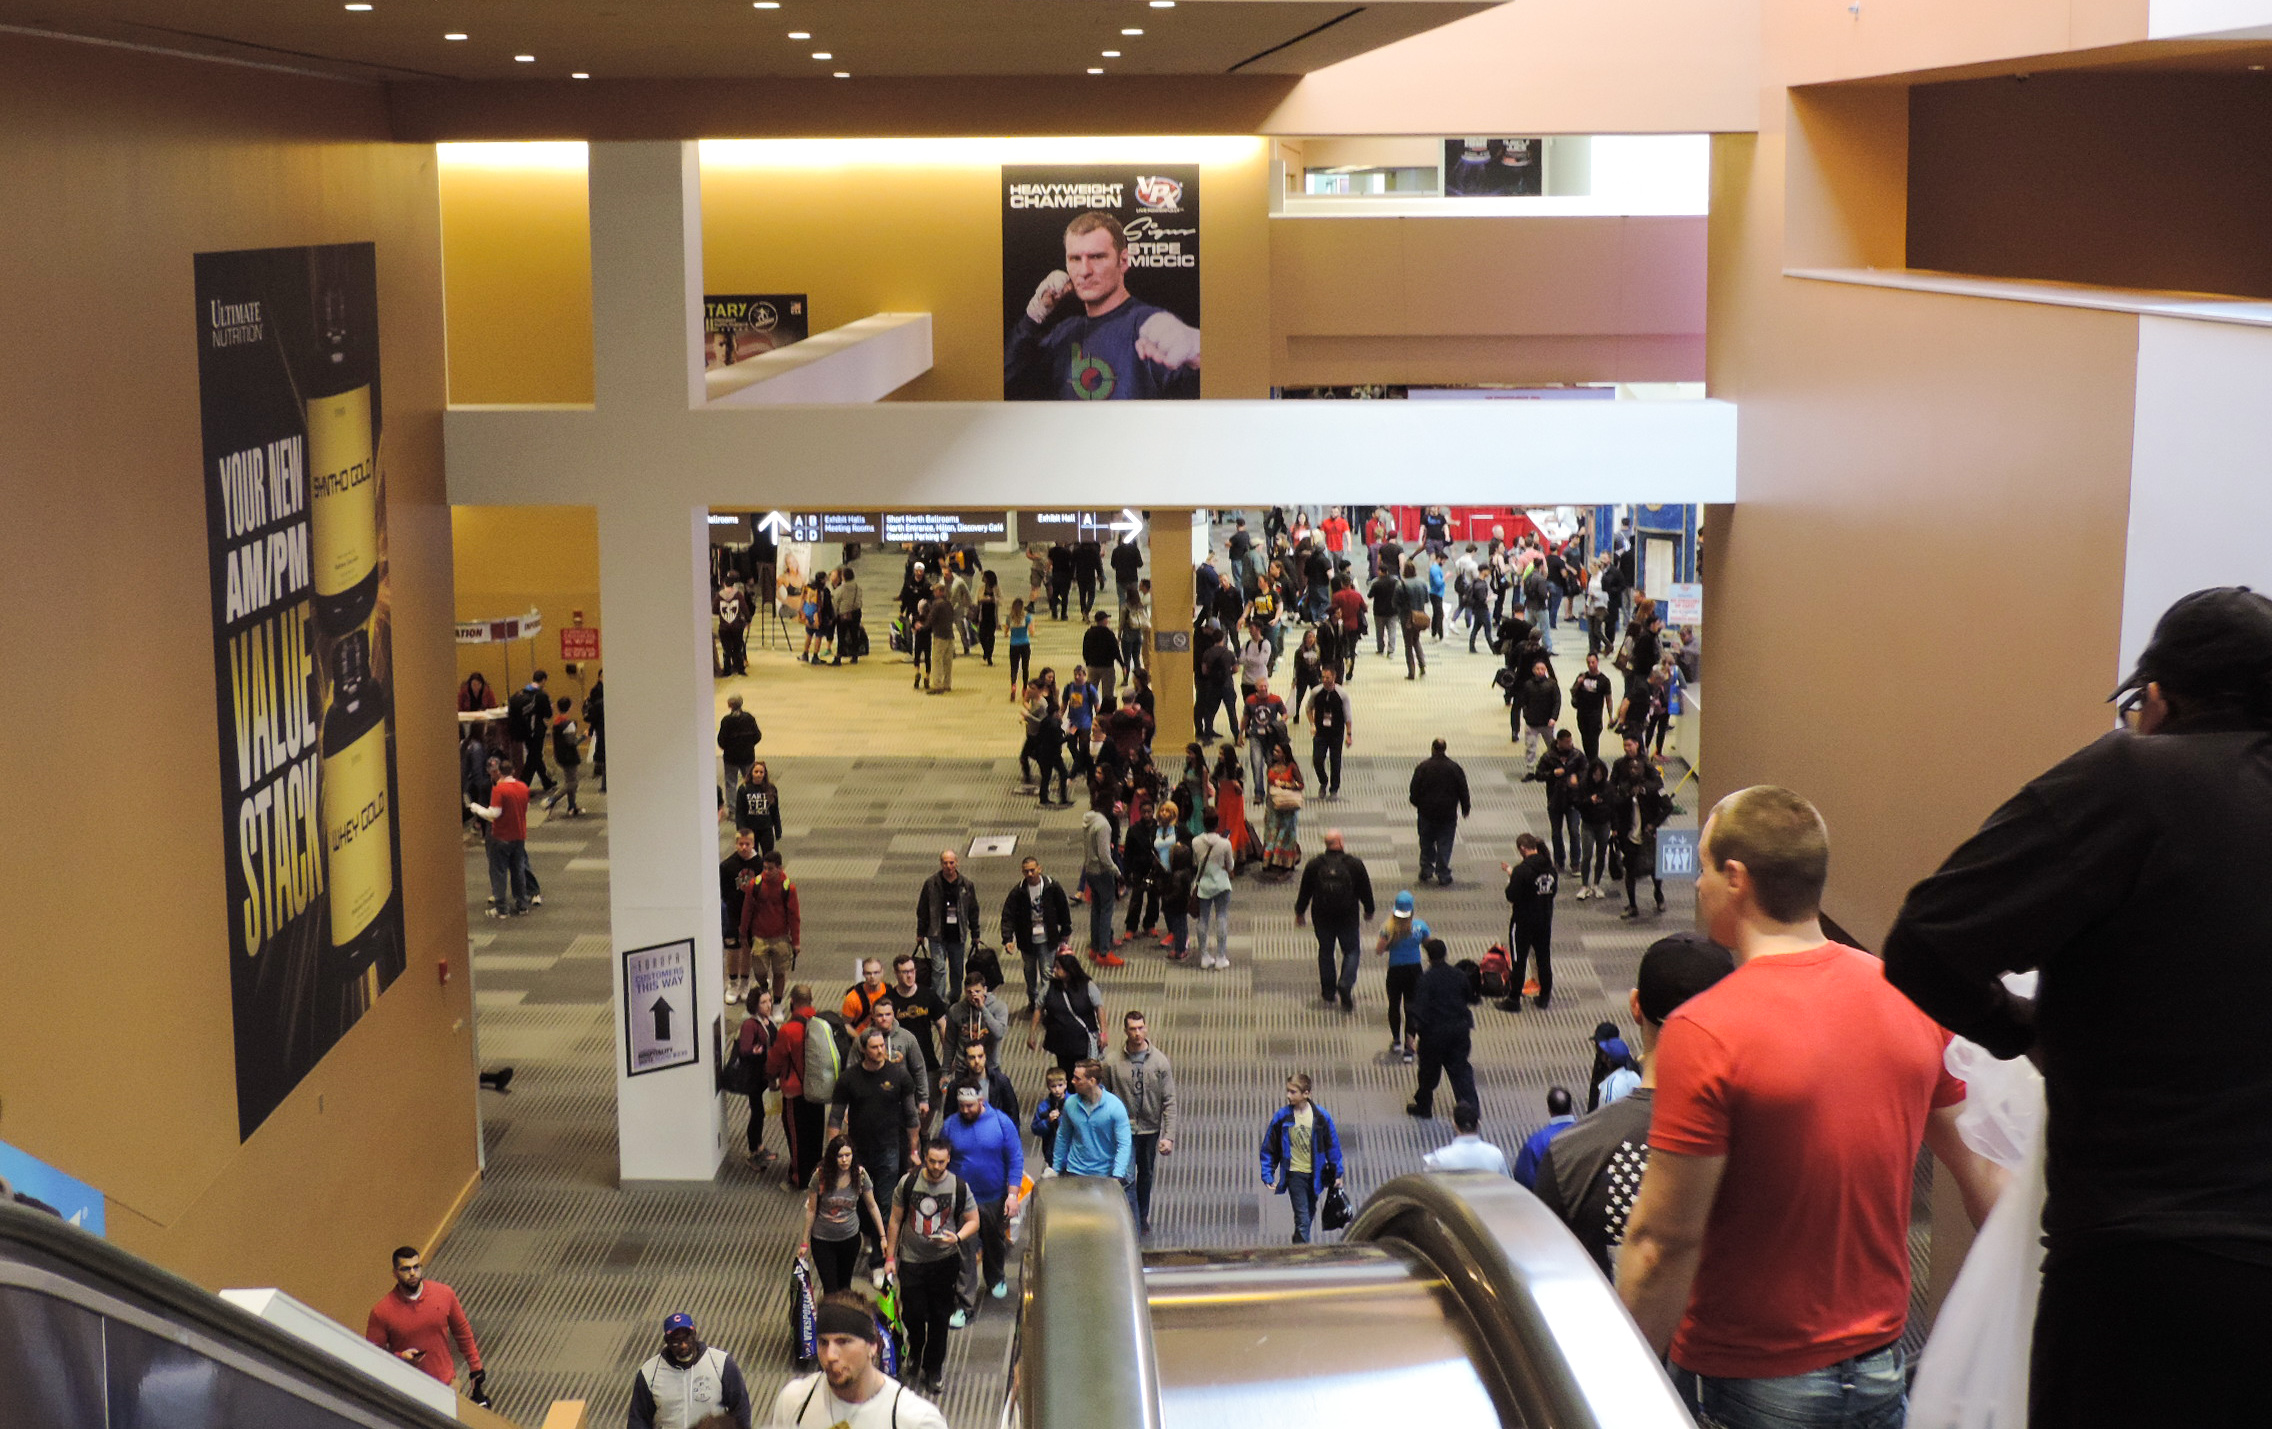 Entrance to the Arnold Sports Expo. Crowds of people starting to arrive.